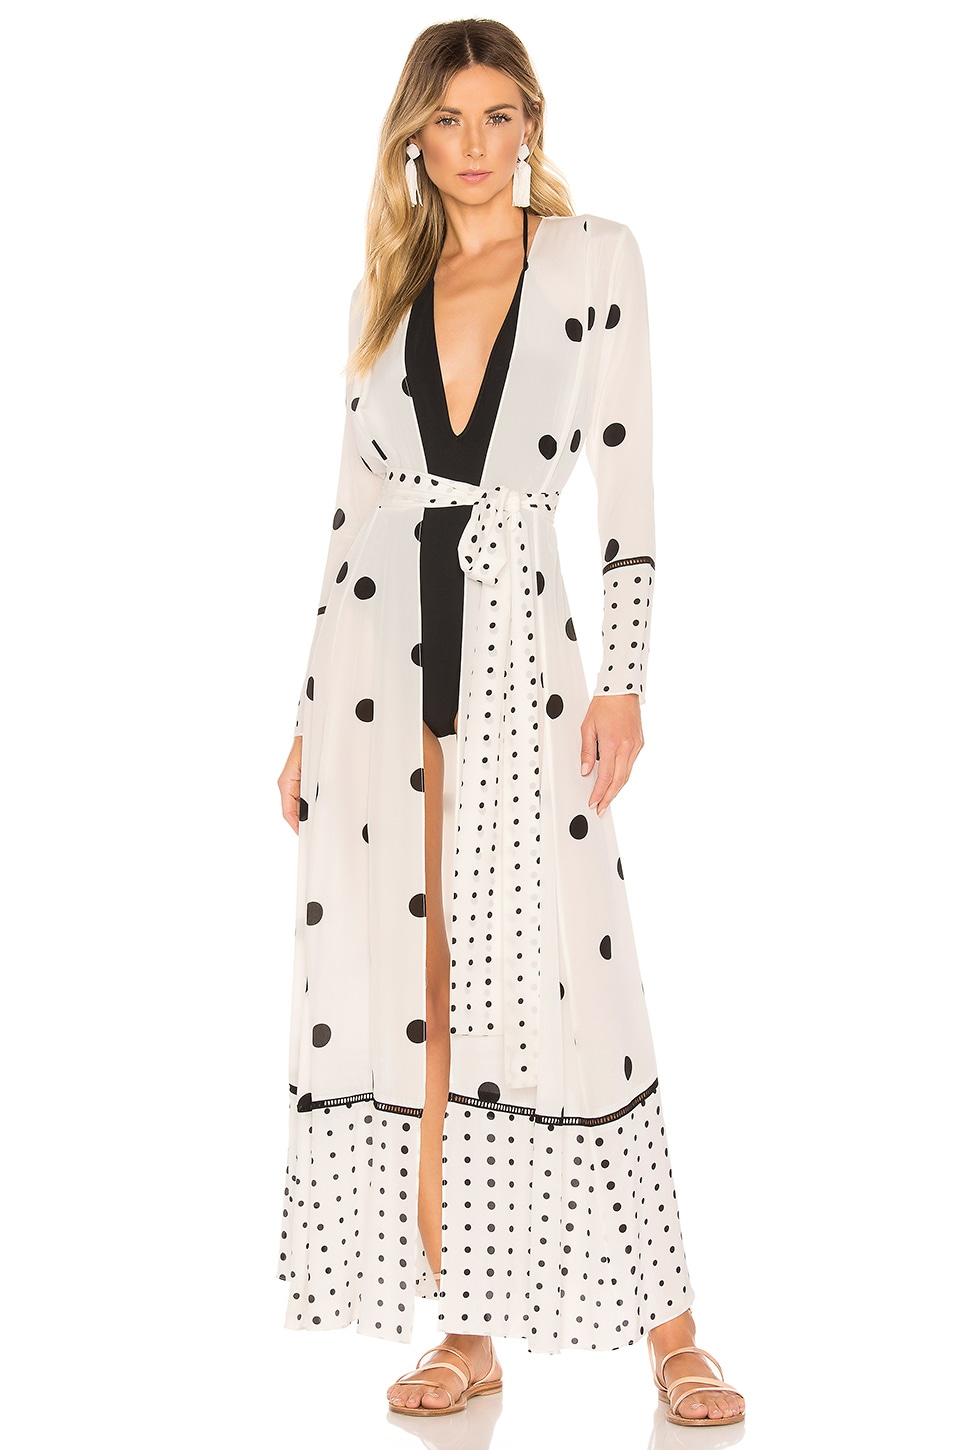 we are LEONE Contrast Maxi Cardigan Dress in White Polka Dot